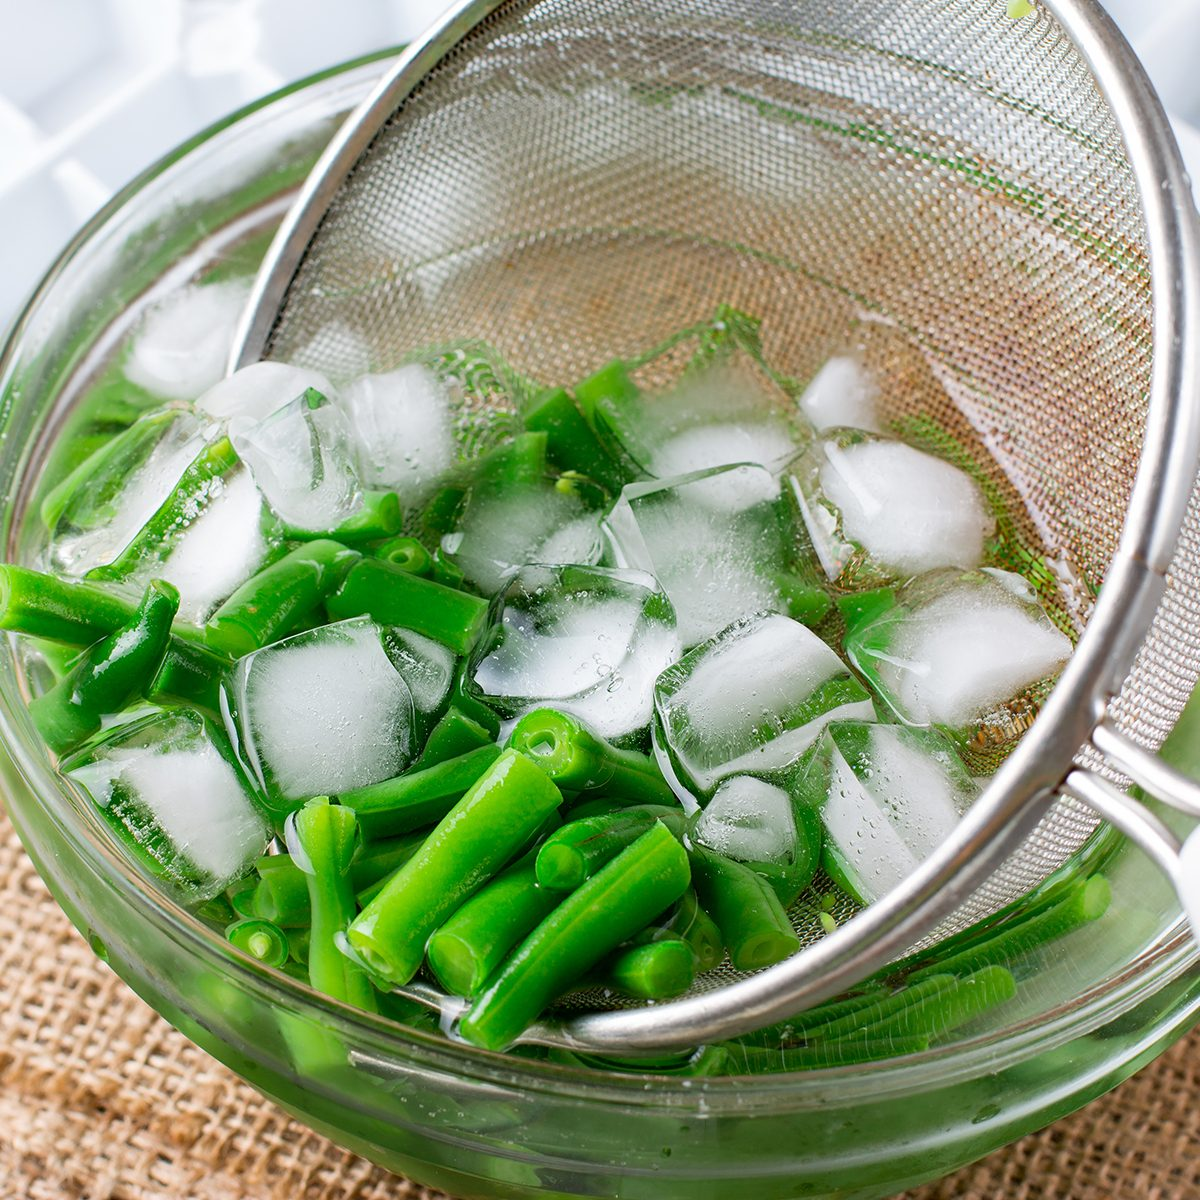 Boiled vegetables, green beans